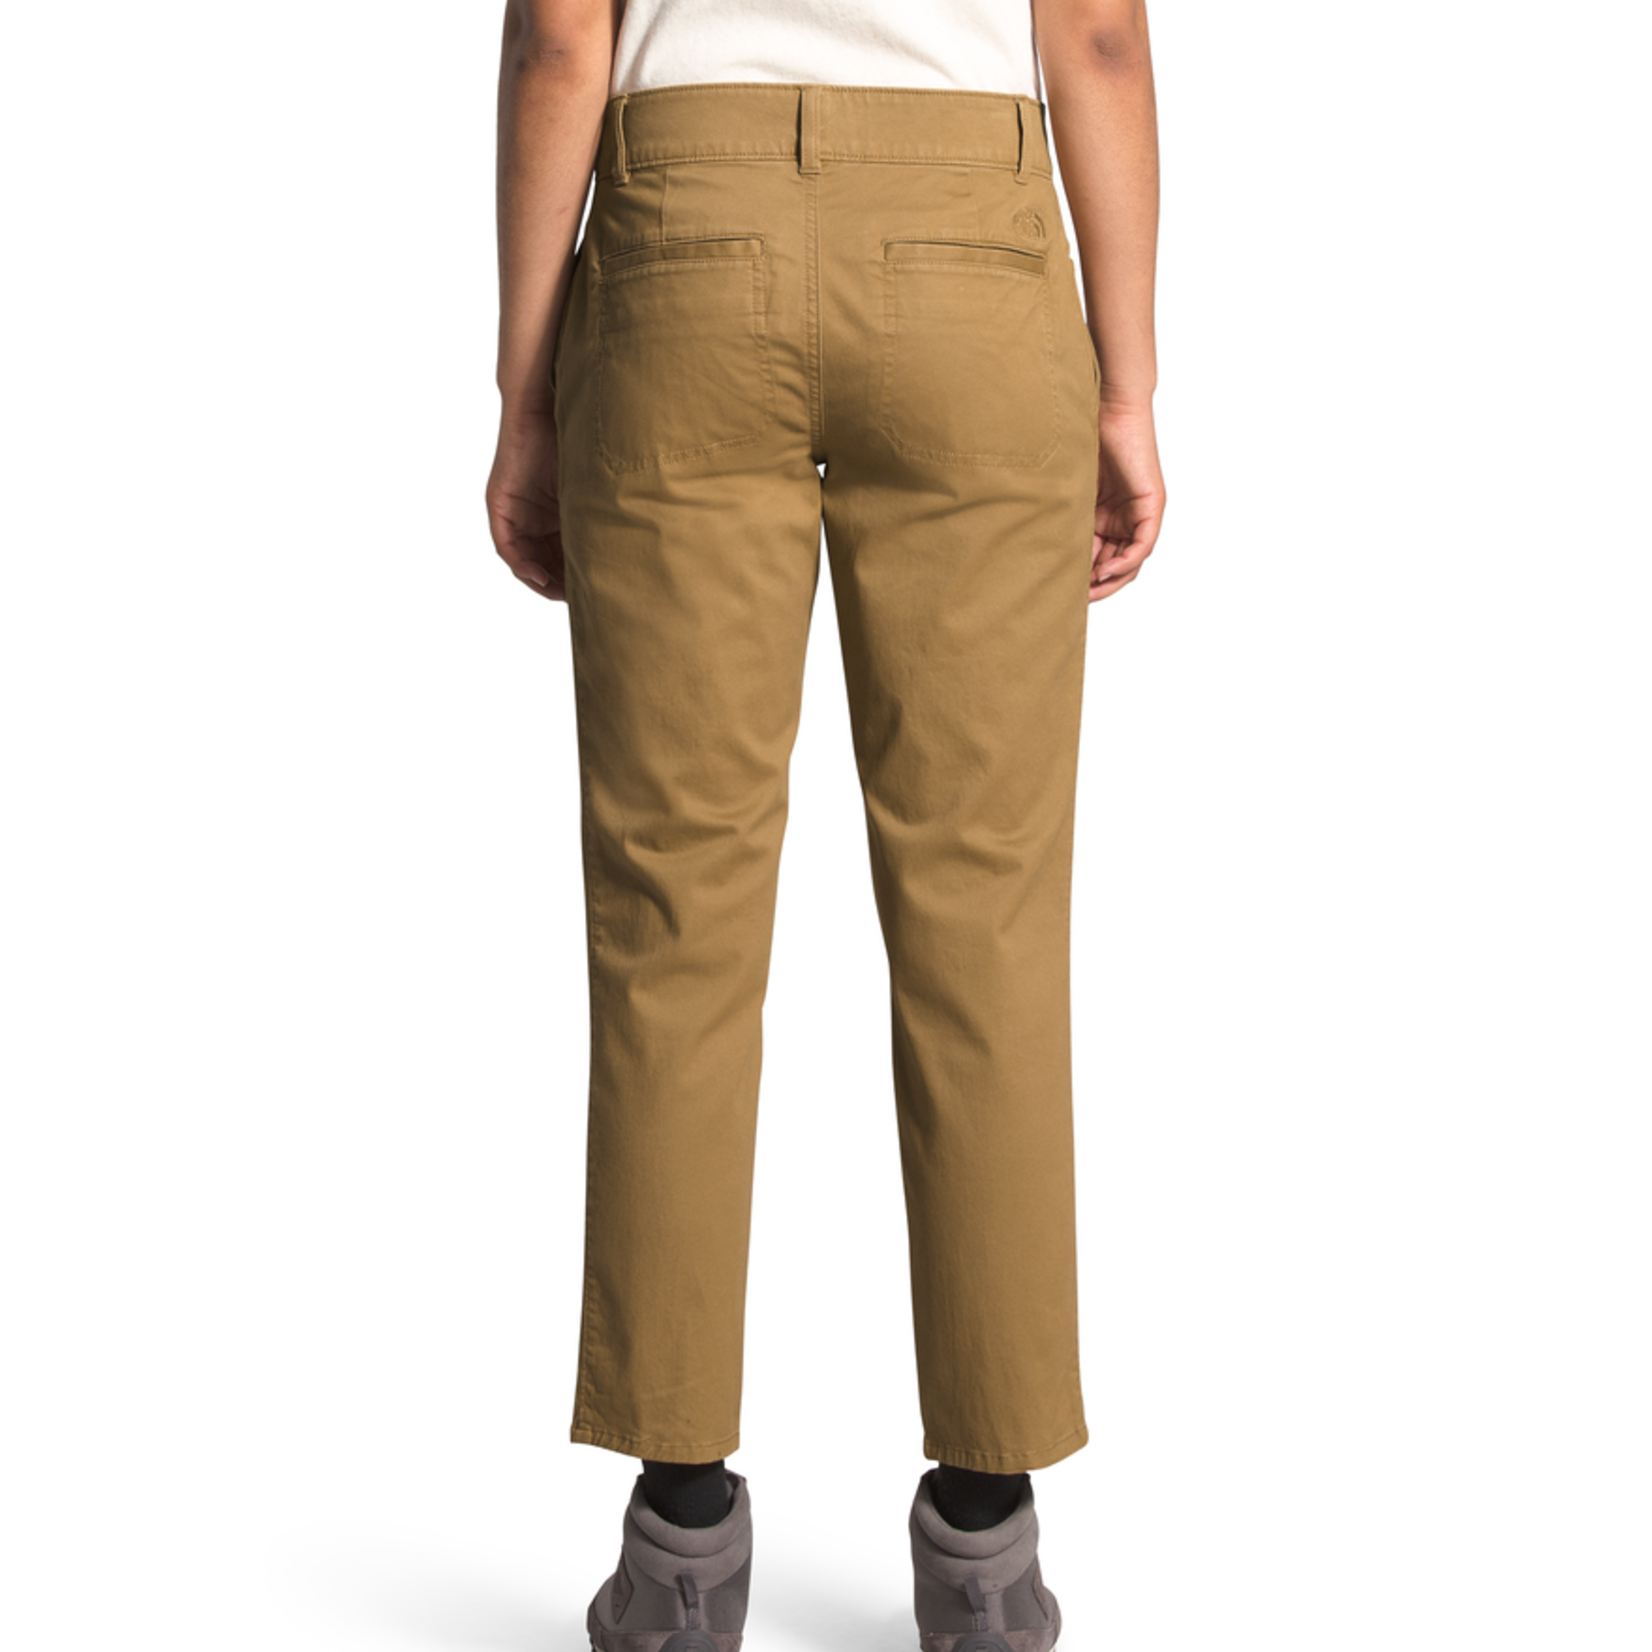 W MOTION XD ANKLE CHINO